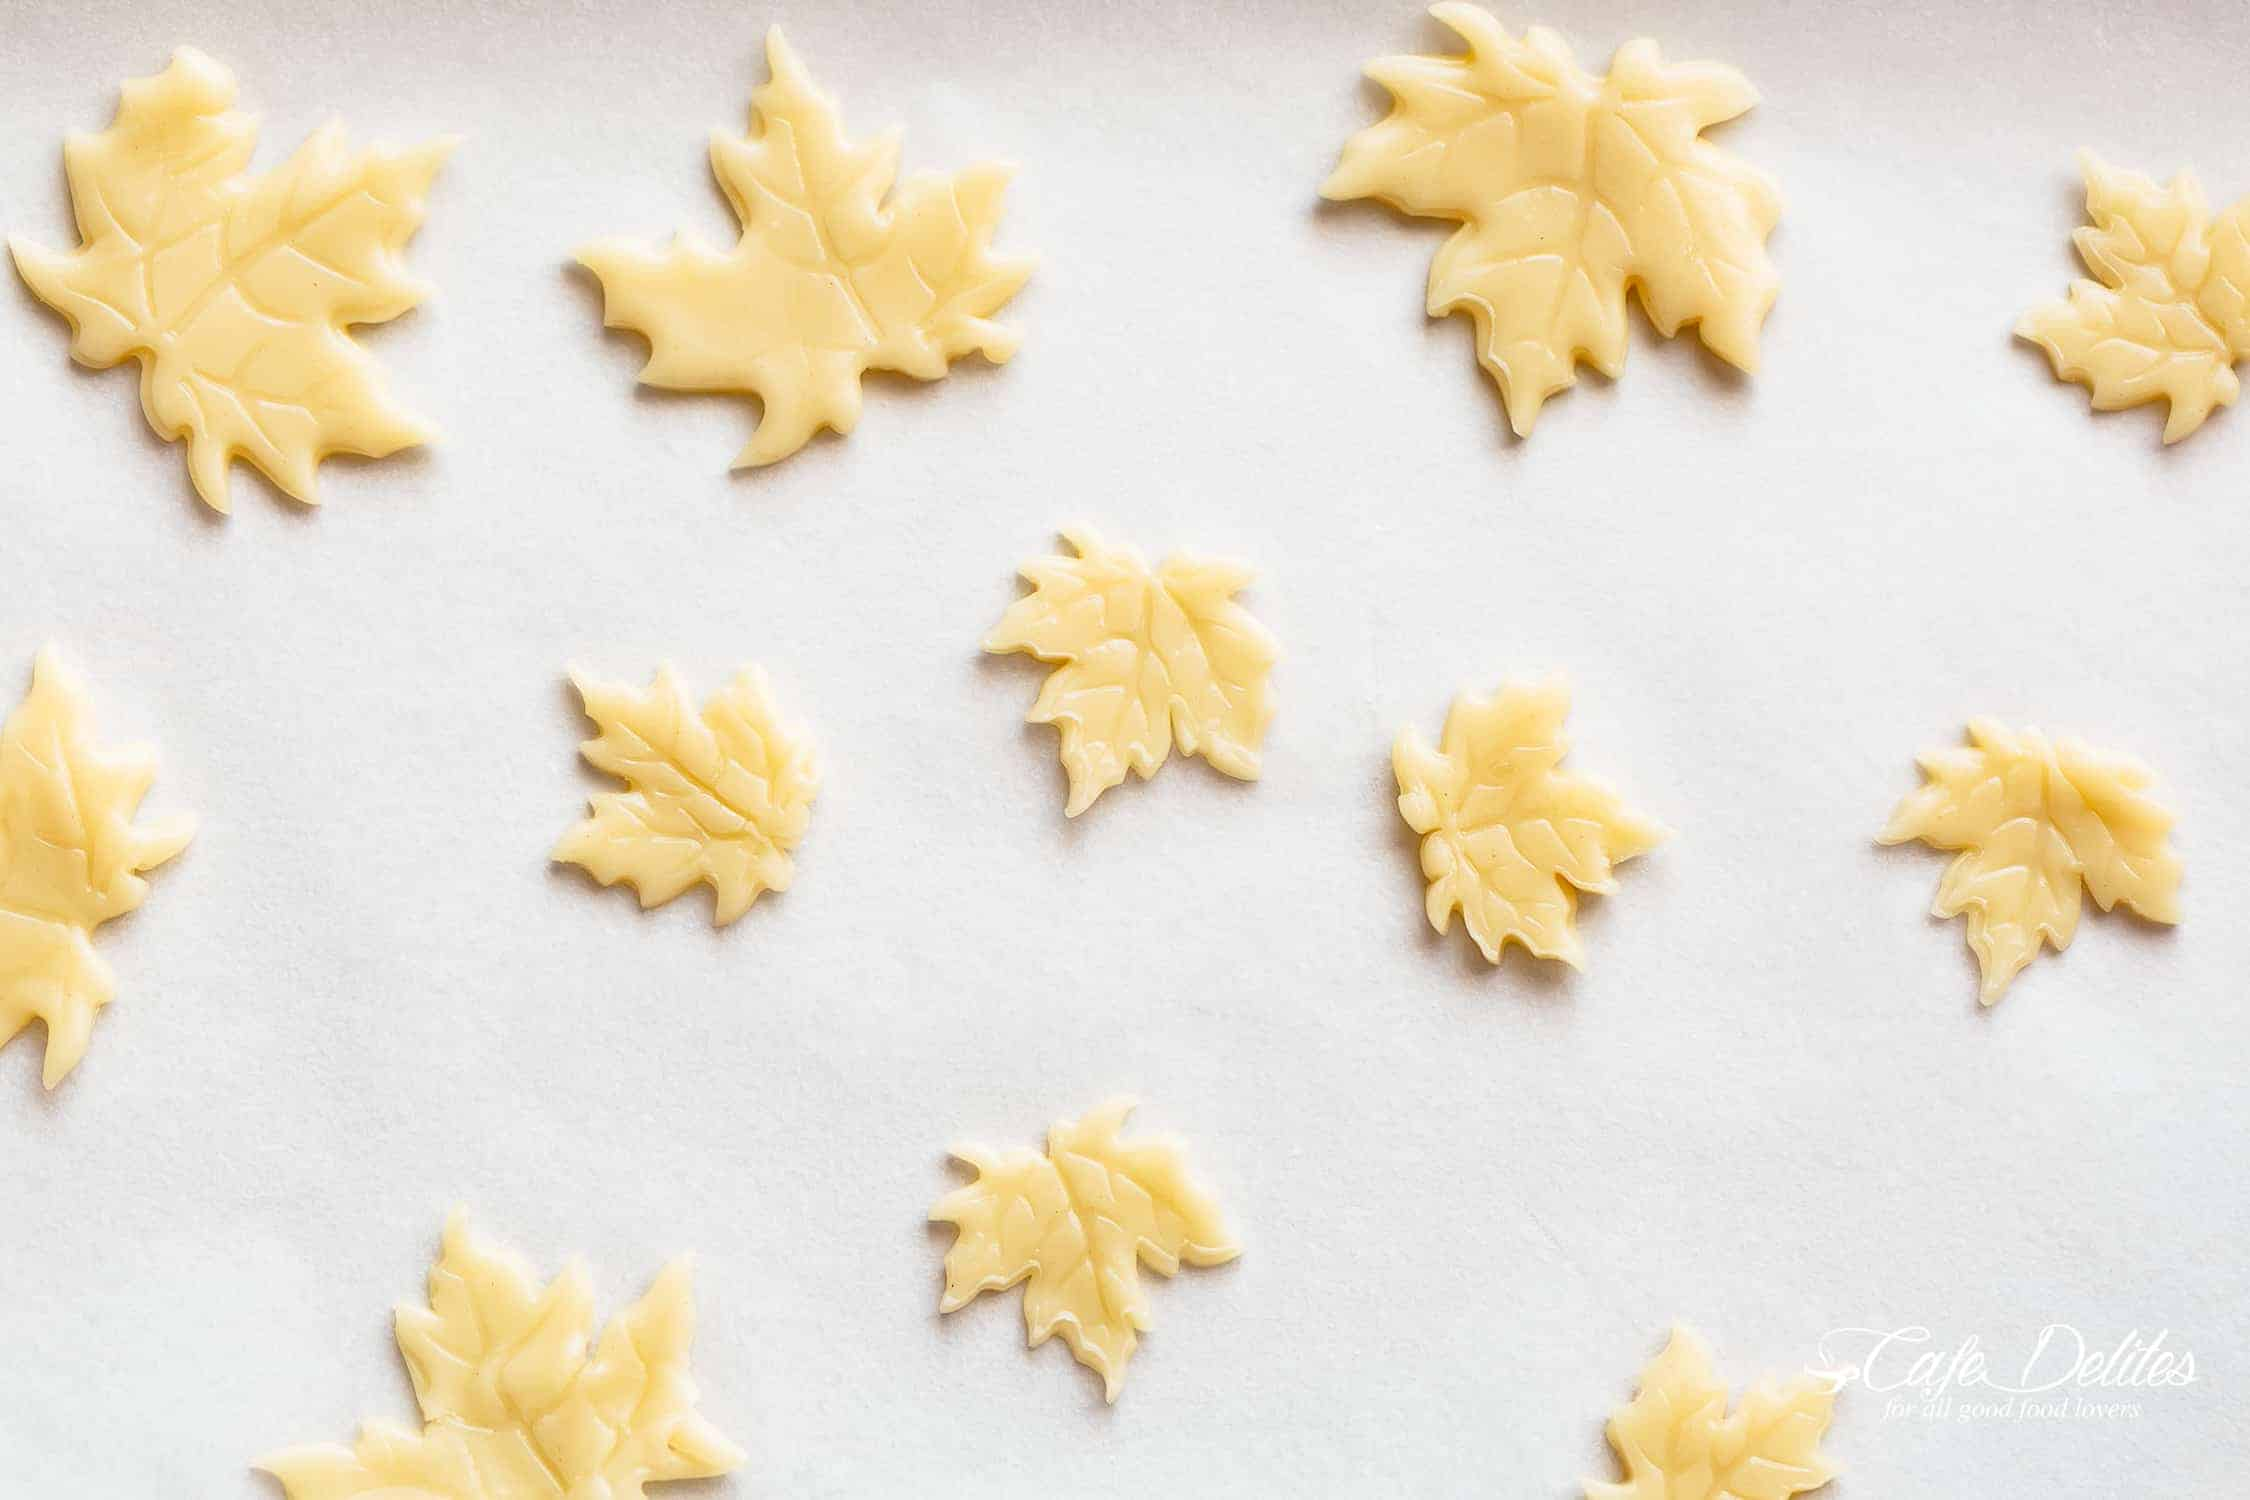 Fall leaves pastry cutter for pumpkin pie